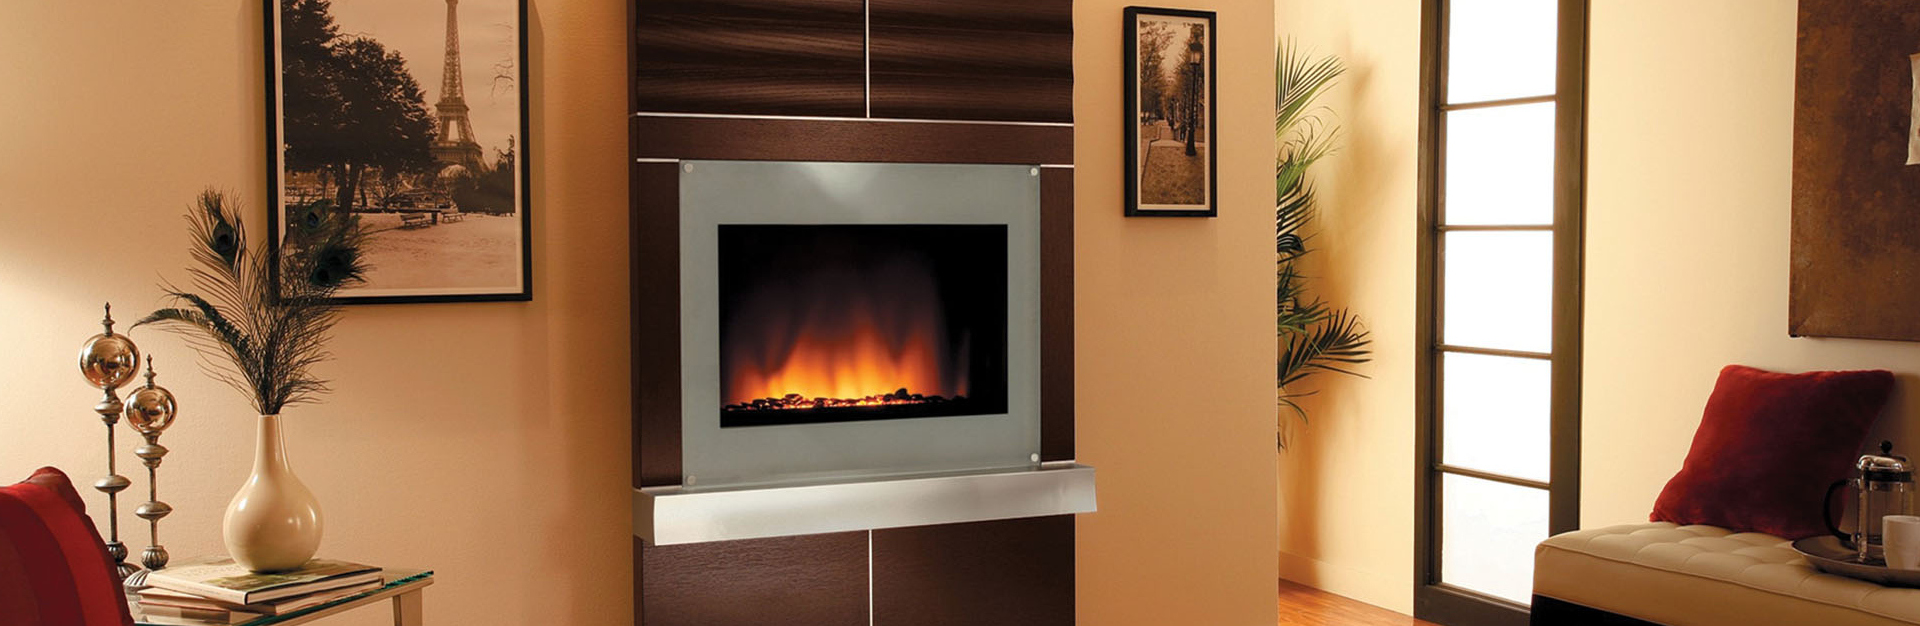 images m s stock photos w h fireplace pictures photo free picture royalty k istock and